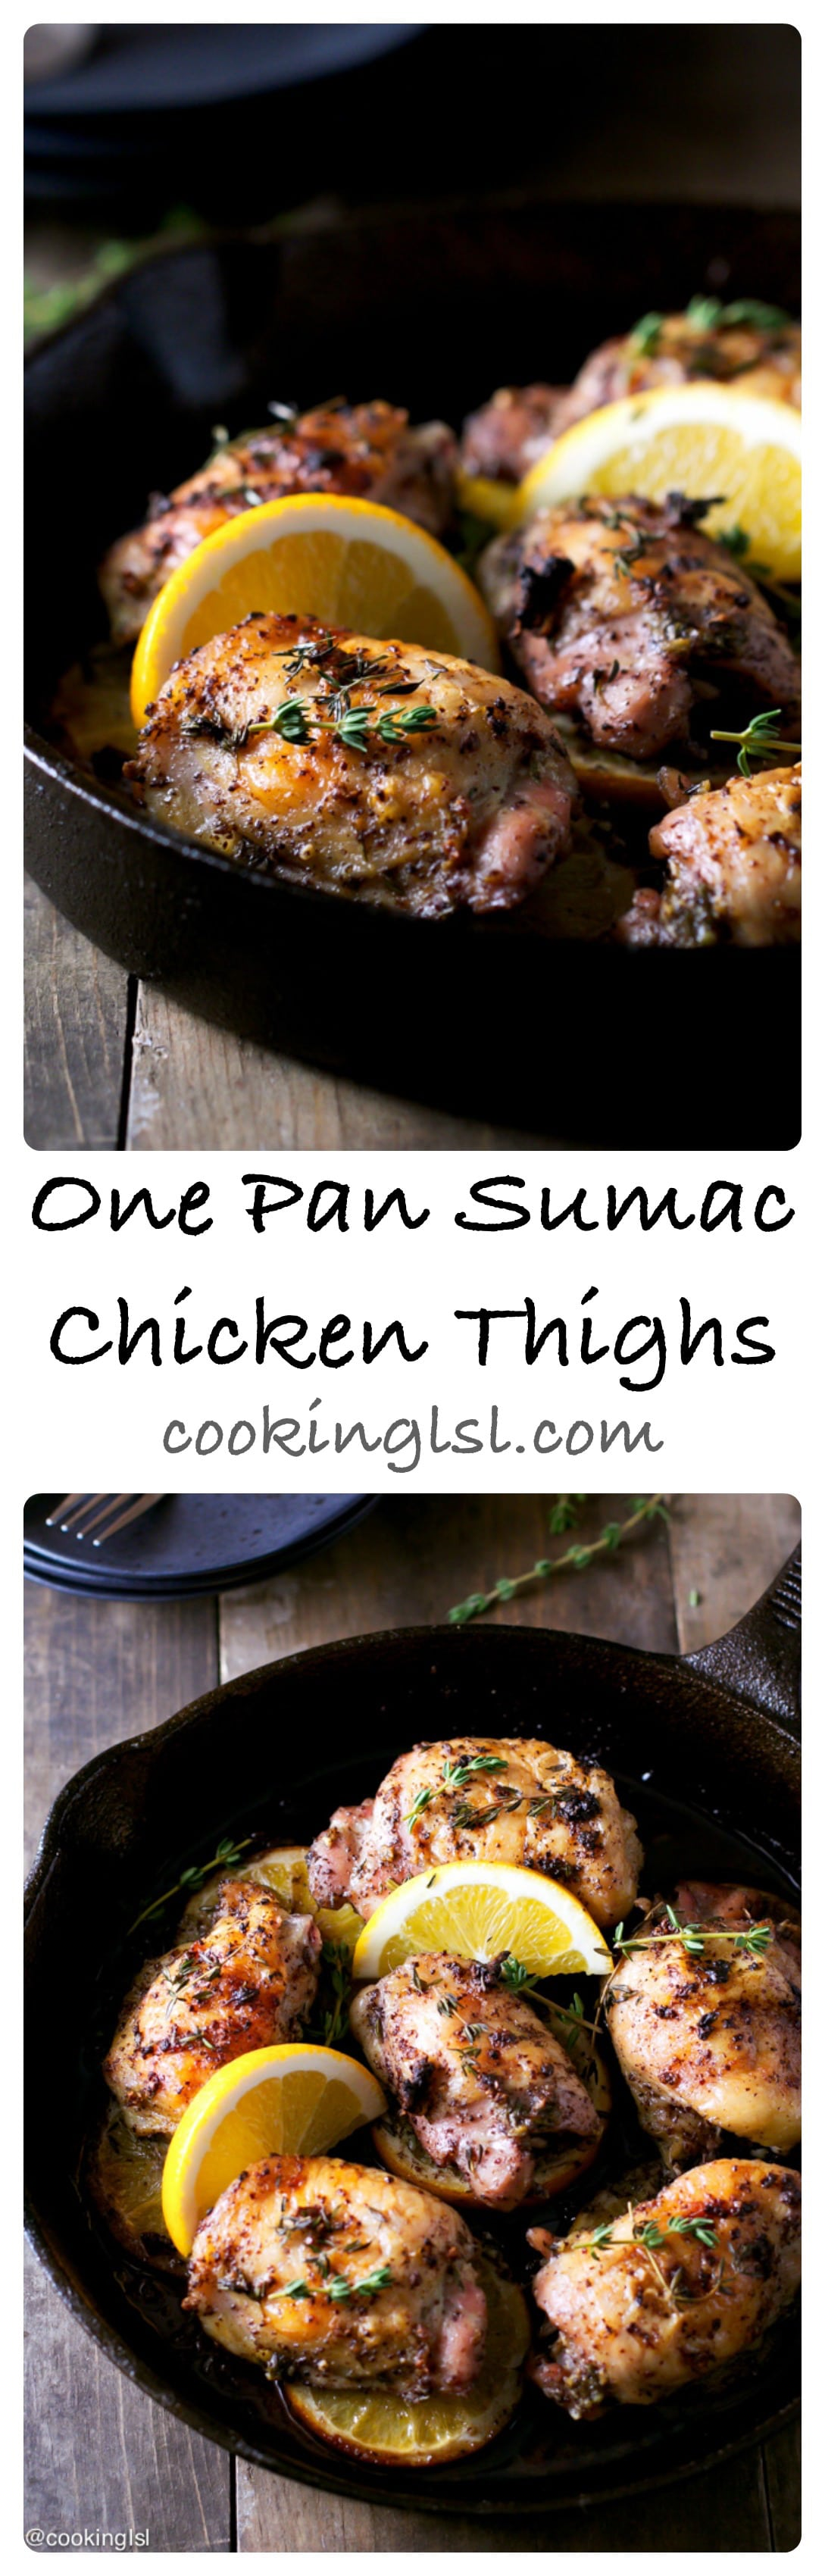 With crispy skin and citrusy flavor these one pan sumac chicken thighs are perfect for weeknight dinner or family gathering. #sumac #chickenrecipes #chickenthighs